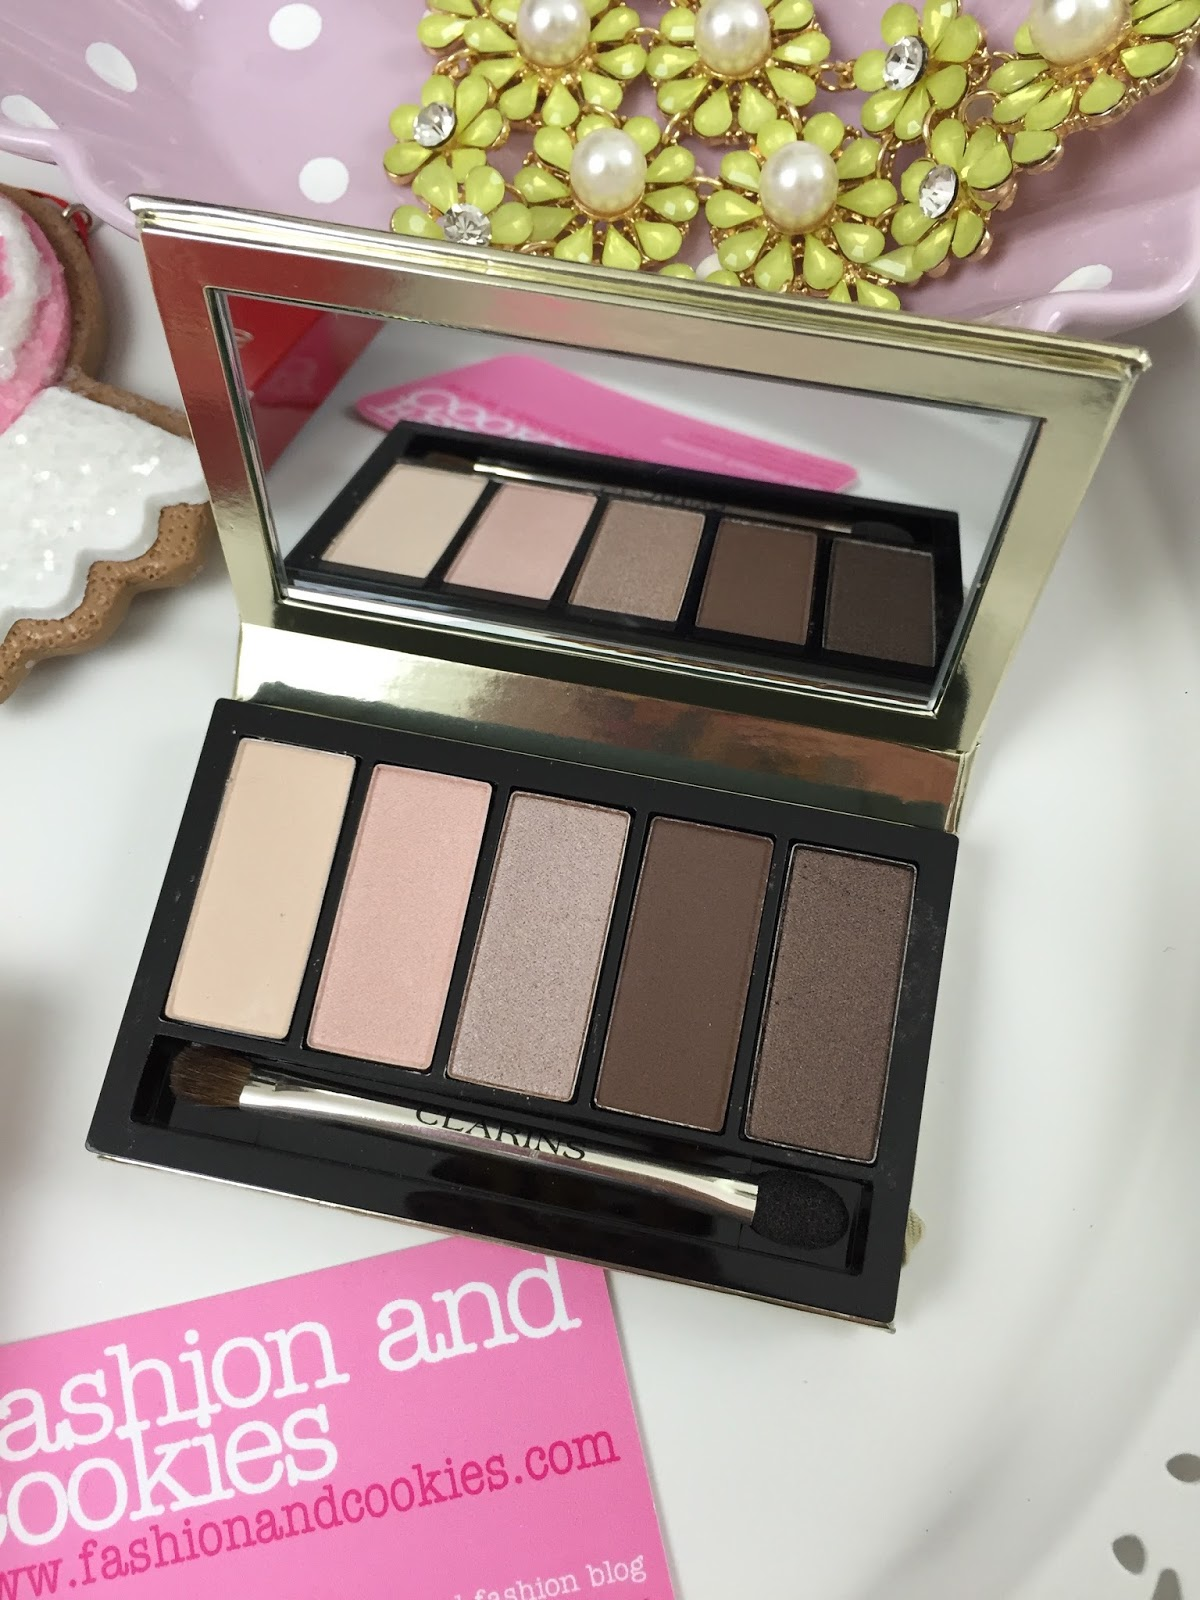 Clarins Pretty Day Eyeshadow palette Limited Edition review on Fashion and Cookies fashion blog, fashion blogger style